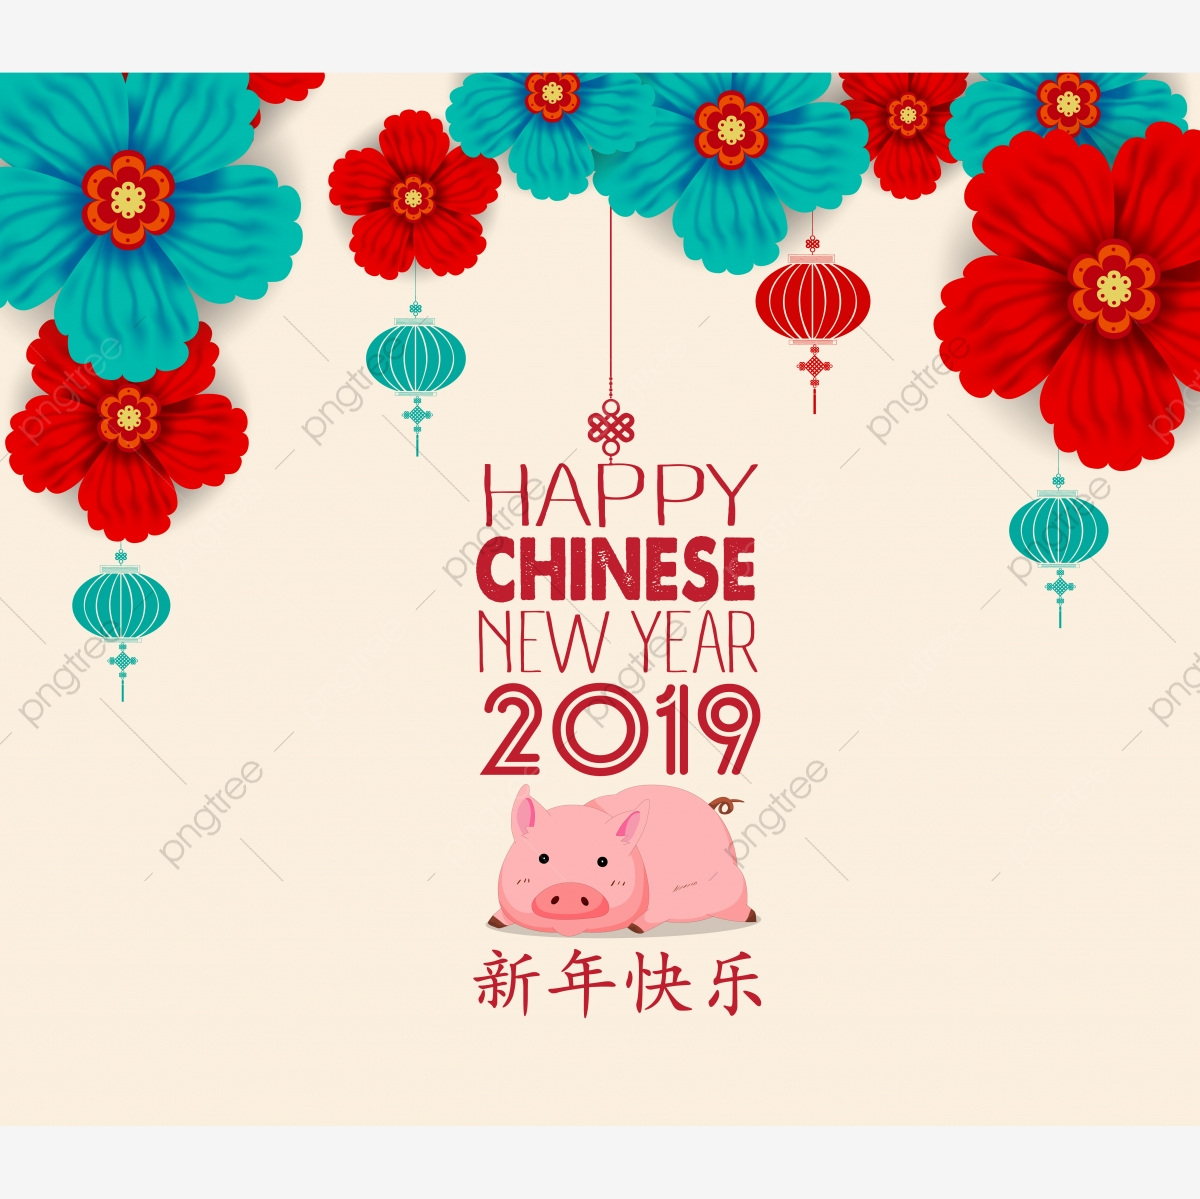 Happy Chinese New Year 2019 Year Of The Pig With Cartoon Pig Chinese.